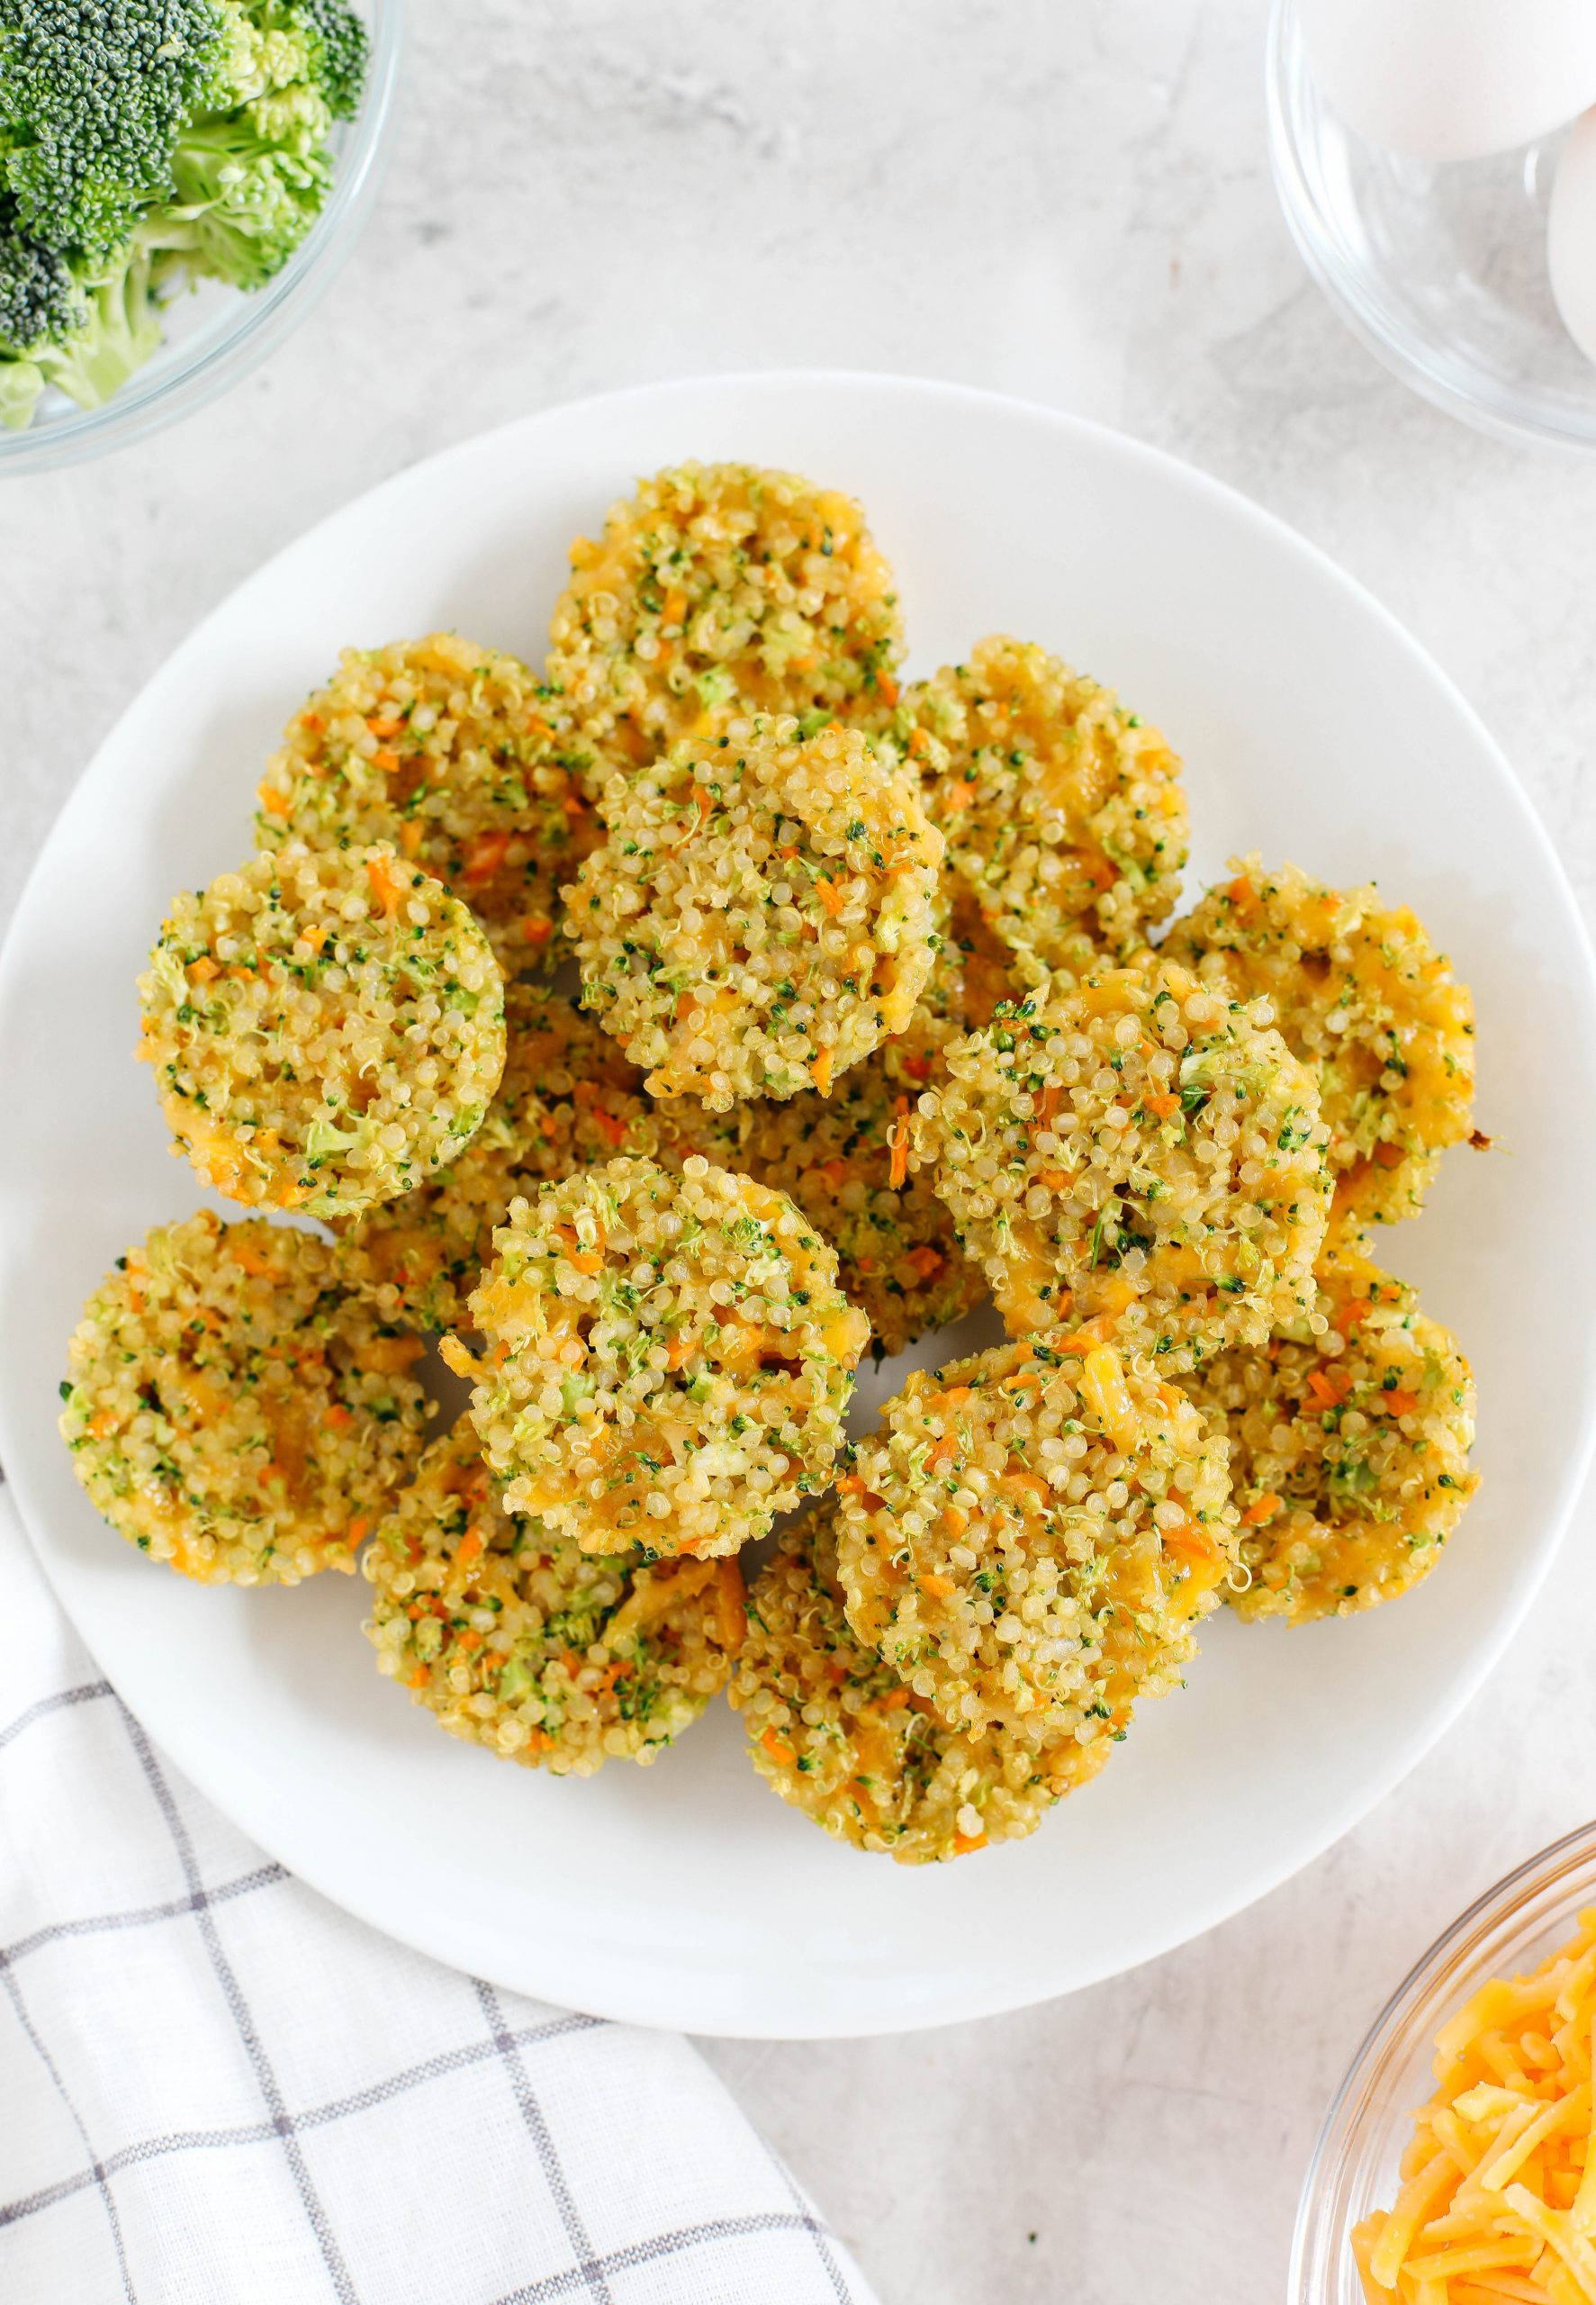 Bite-sized Cheesy Broccoli Quinoa Bites perfect for babies, toddlers and kids that are healthy, packed with protein and easily made with only 5 simple ingredients!